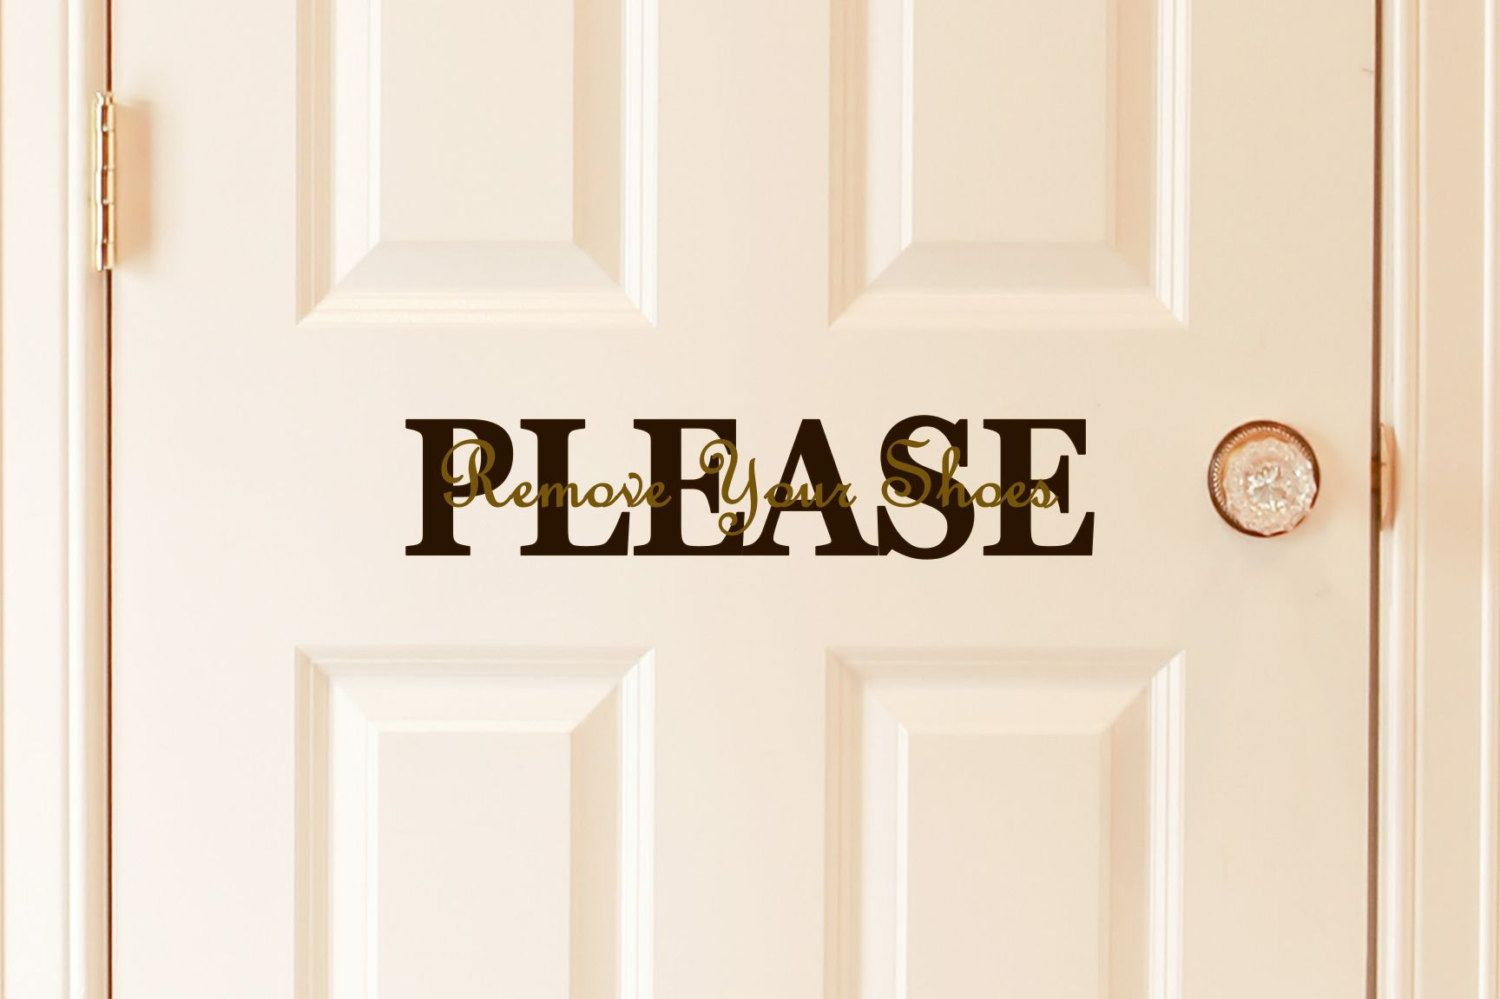 Please Remove Your Shoes Vinyl Door Decal Door Decal Custom - Custom vinyl decals for cars   removal options